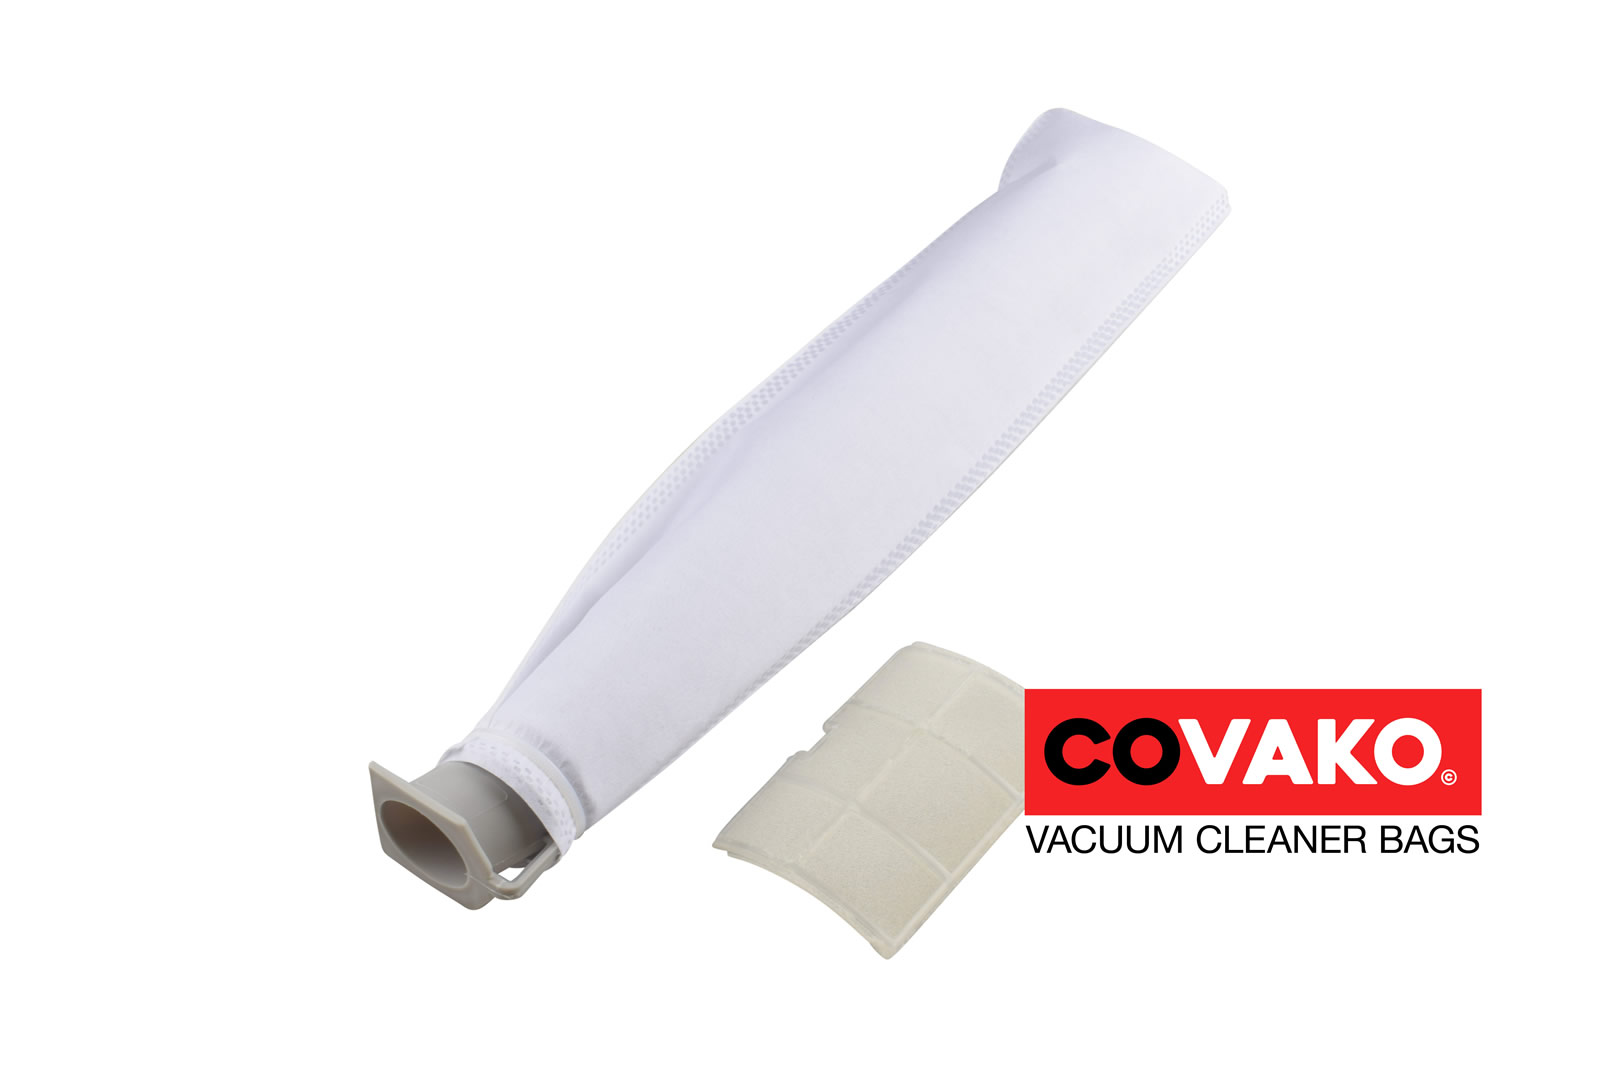 Micro Hygienefilter + Exhaust air filter / Part Item - Micro-Hygiene-Filter + Abluftfiltervacuum cleaner bags